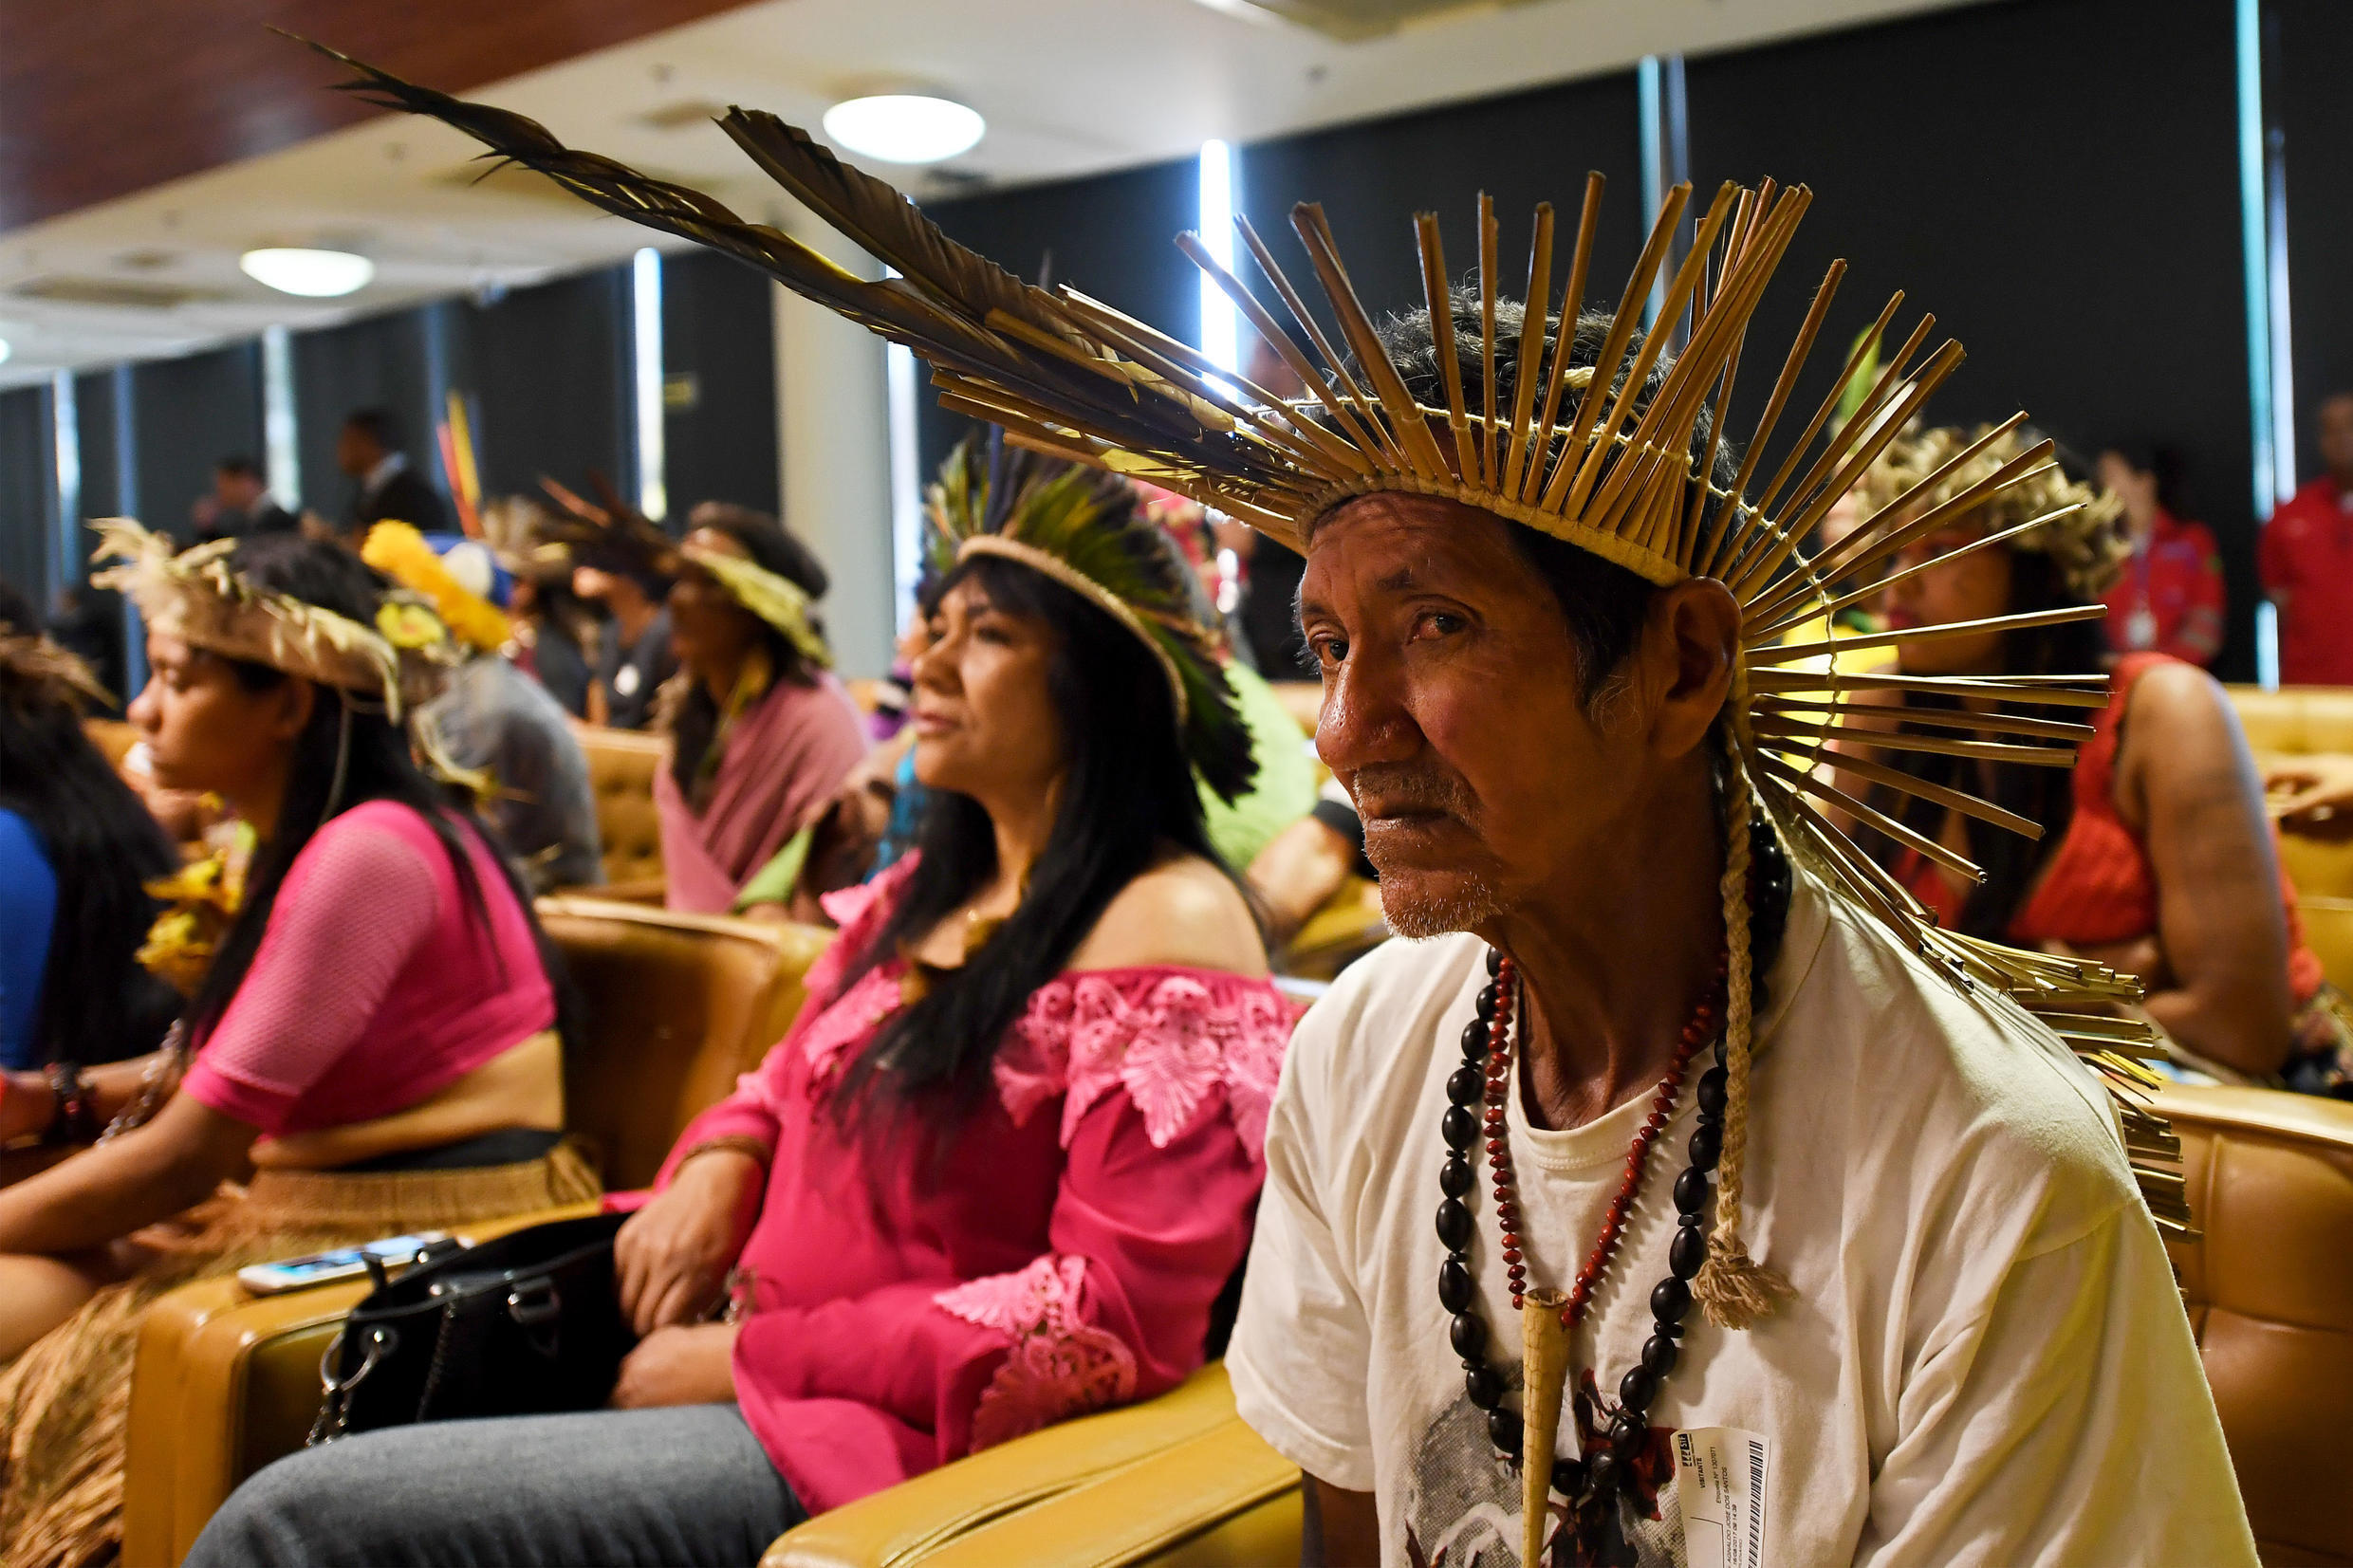 (File photo) Tribes from the Brazilian Amazon have been fighting for recognition and human rights for many years. Here, representatives from several tribes attend a Supreme Court session in Brasilia in 2017.